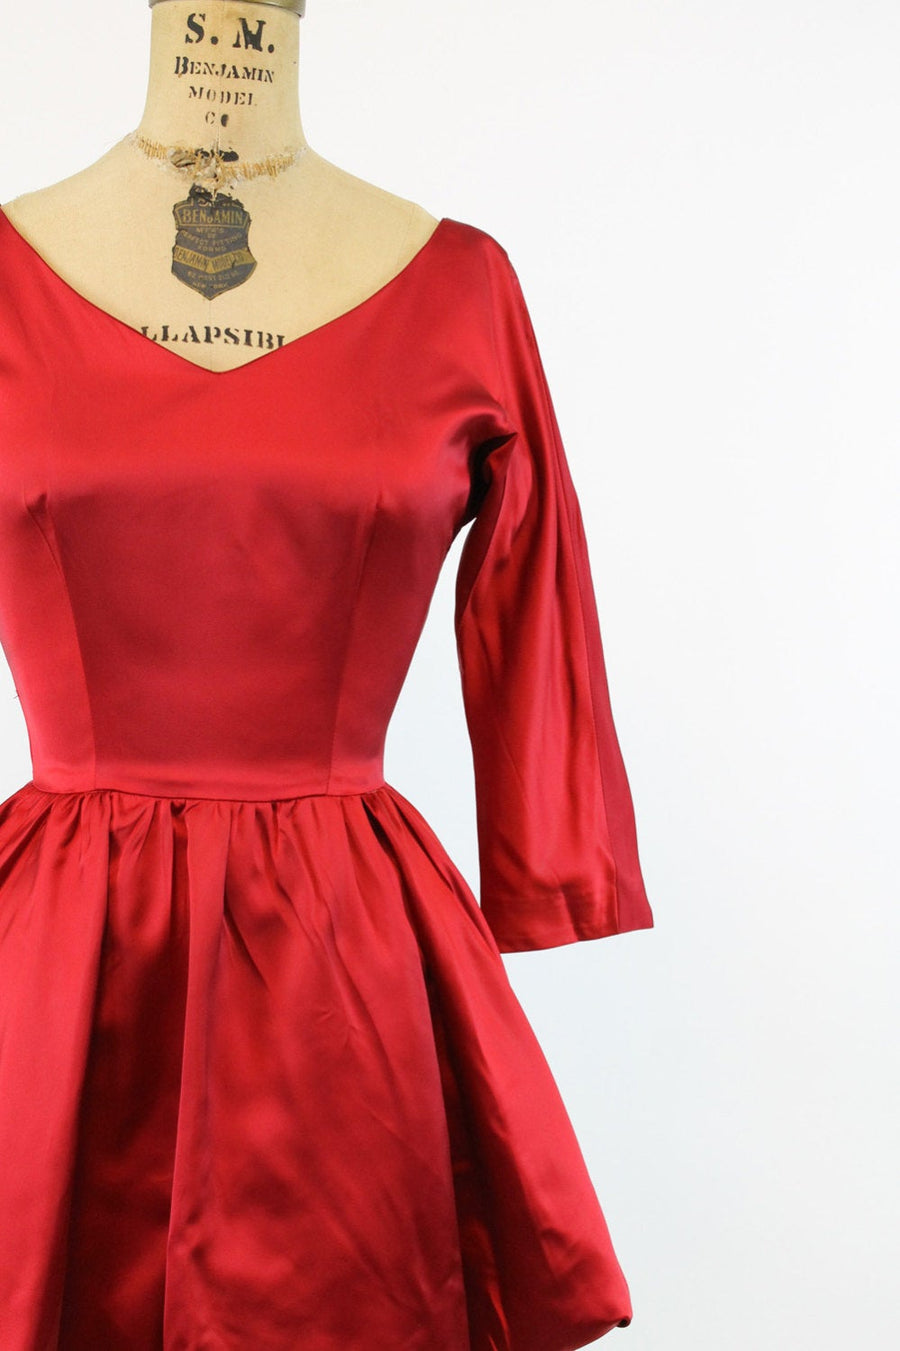 1950s red satin dress | vintage peplum dress | xs